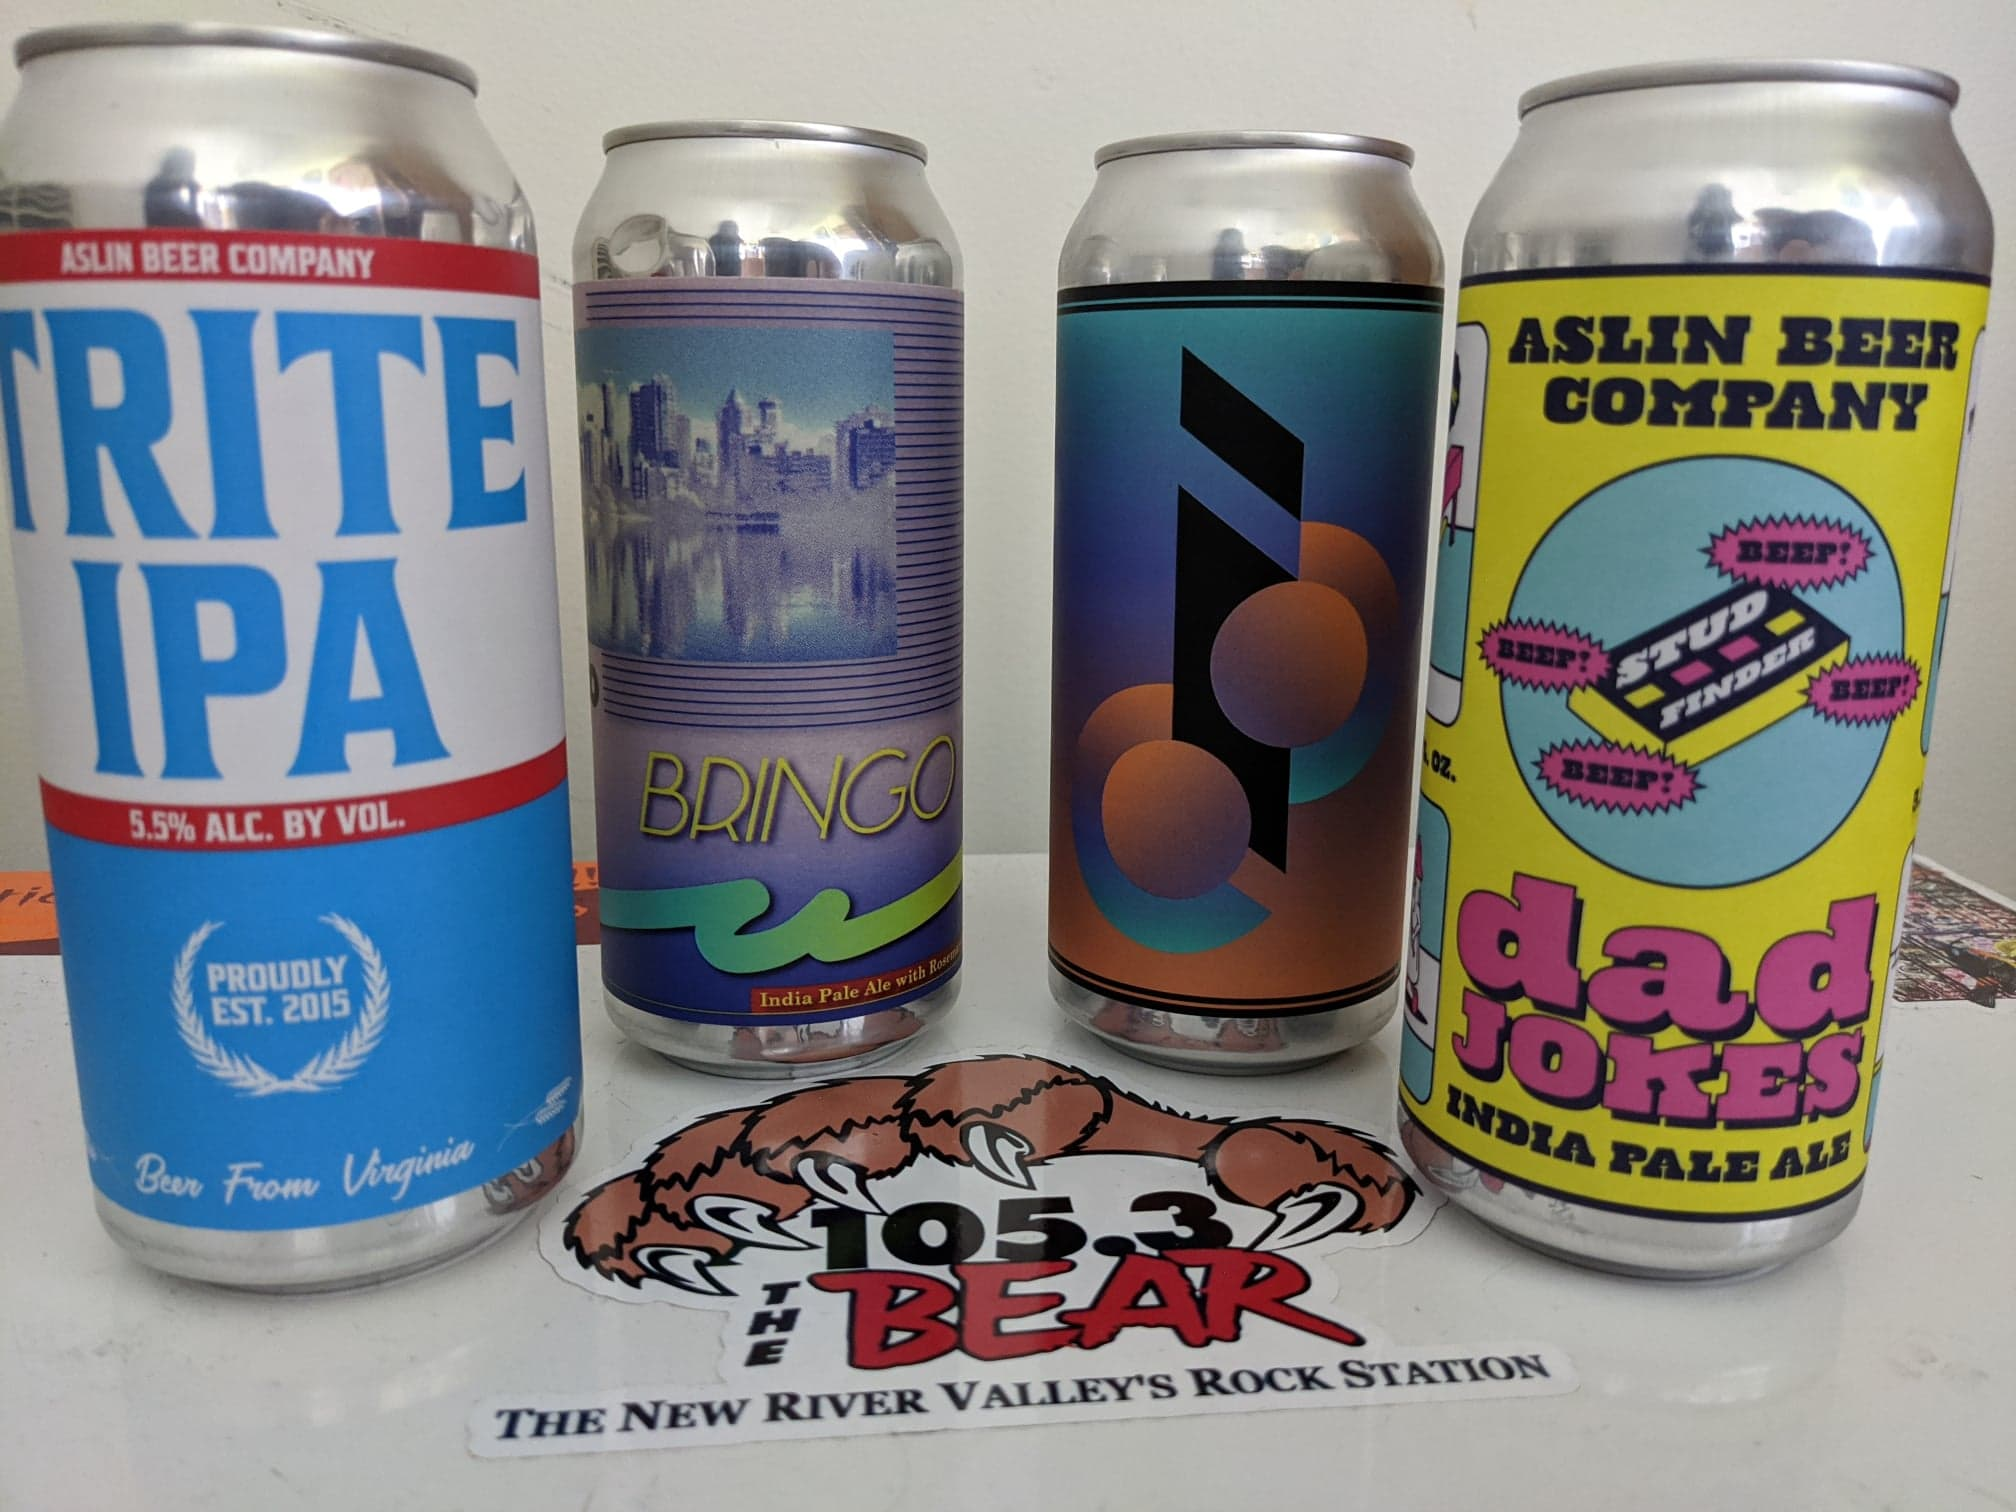 4/21/20 Brewsday Tuesday – ASLIN BEERS